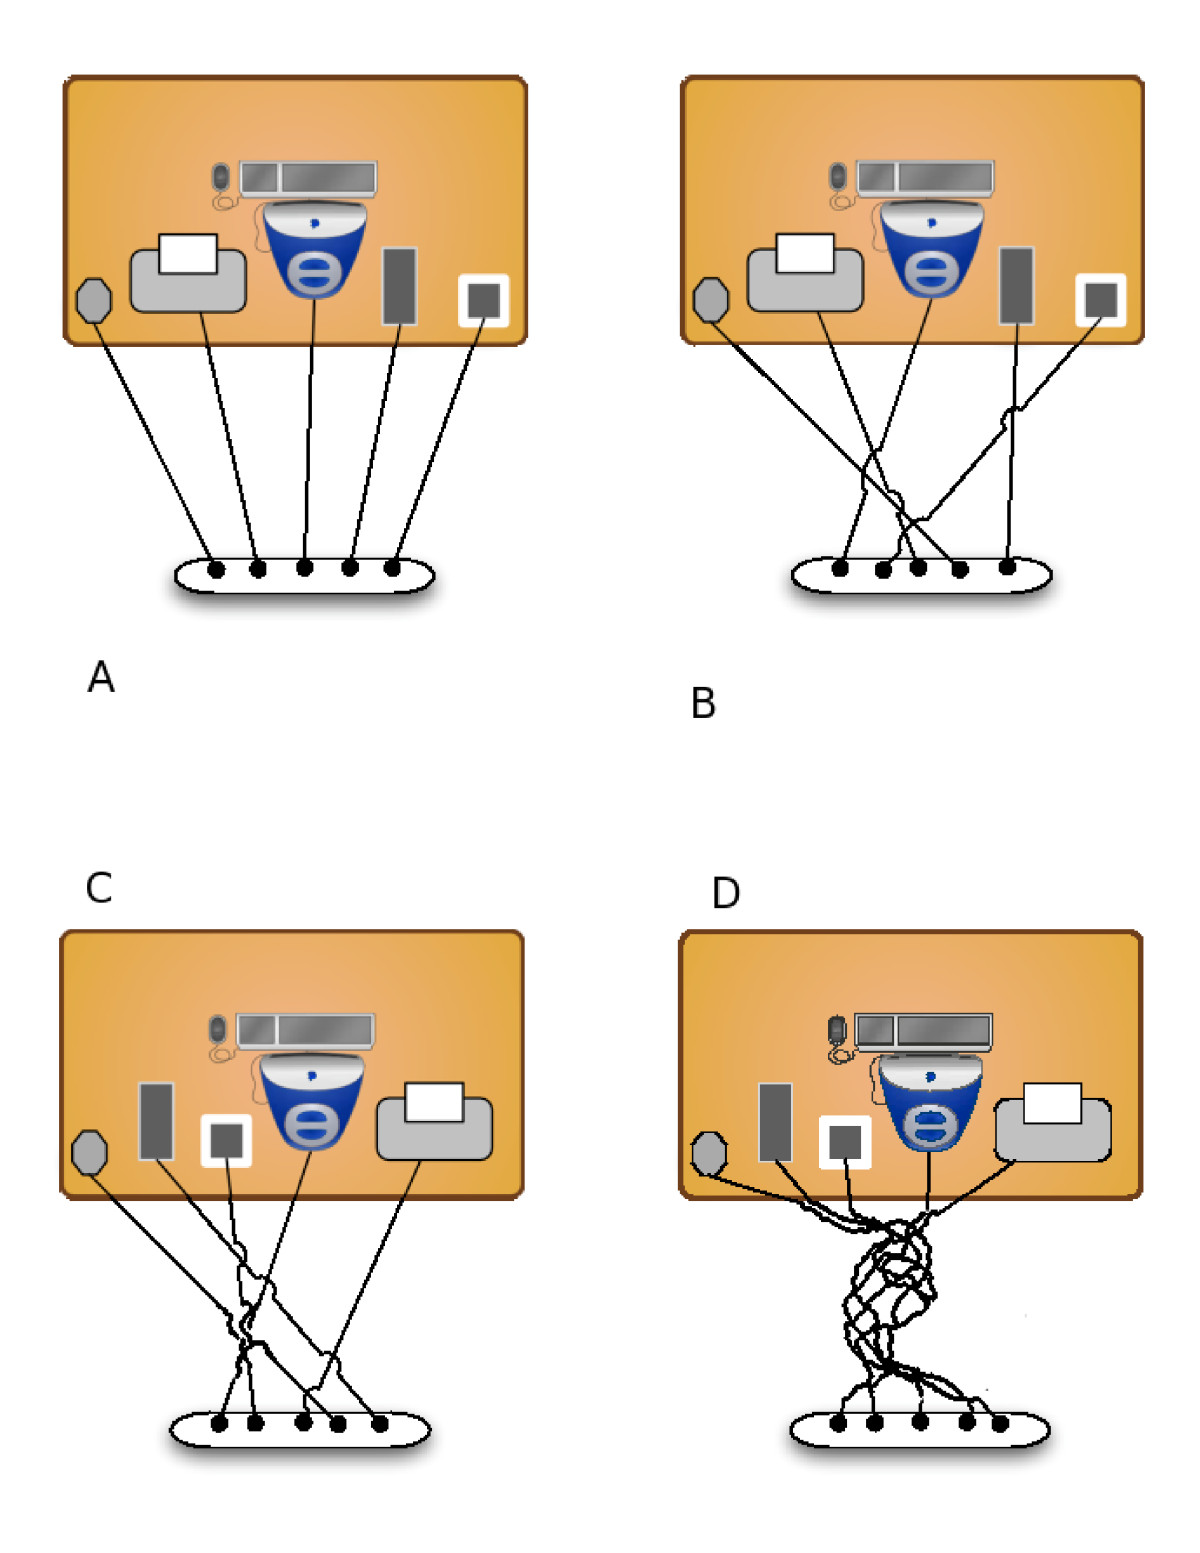 https://static-content.springer.com/image/art%3A10.1186%2F1745-6150-7-35/MediaObjects/13062_2012_Article_349_Fig2_HTML.jpg